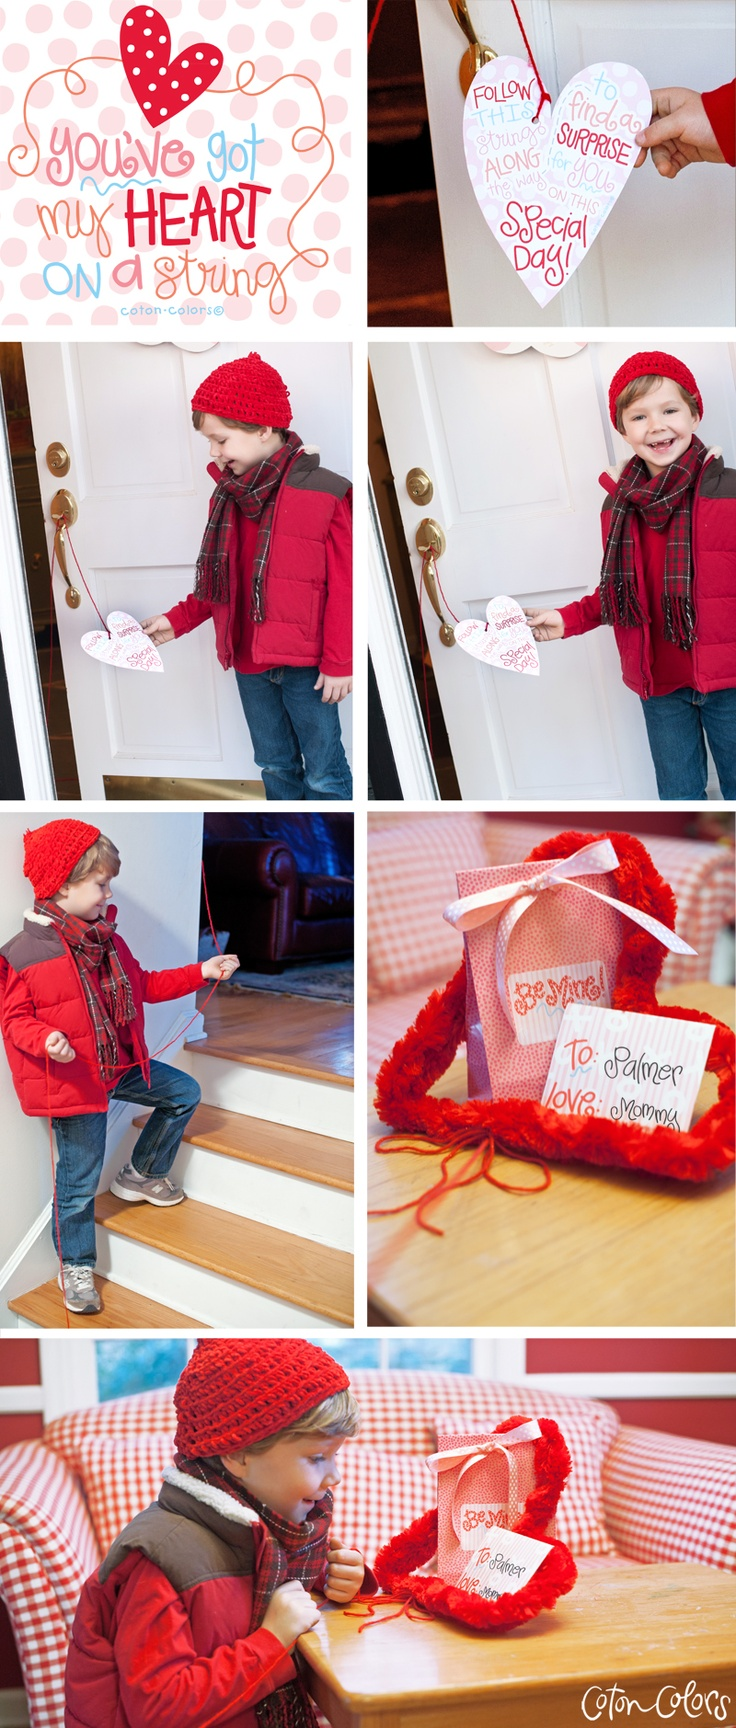 Sweet Valentine Scavenger Hunt for your Sweetie! Find the free printables on the blog...: Valentine Idea, For Kids, Scavenger Hunts, Sweet Valentine, Valentines Day, Valentine Scavenger, Holiday Valentines, Valentine S Scavenger, Free Printables